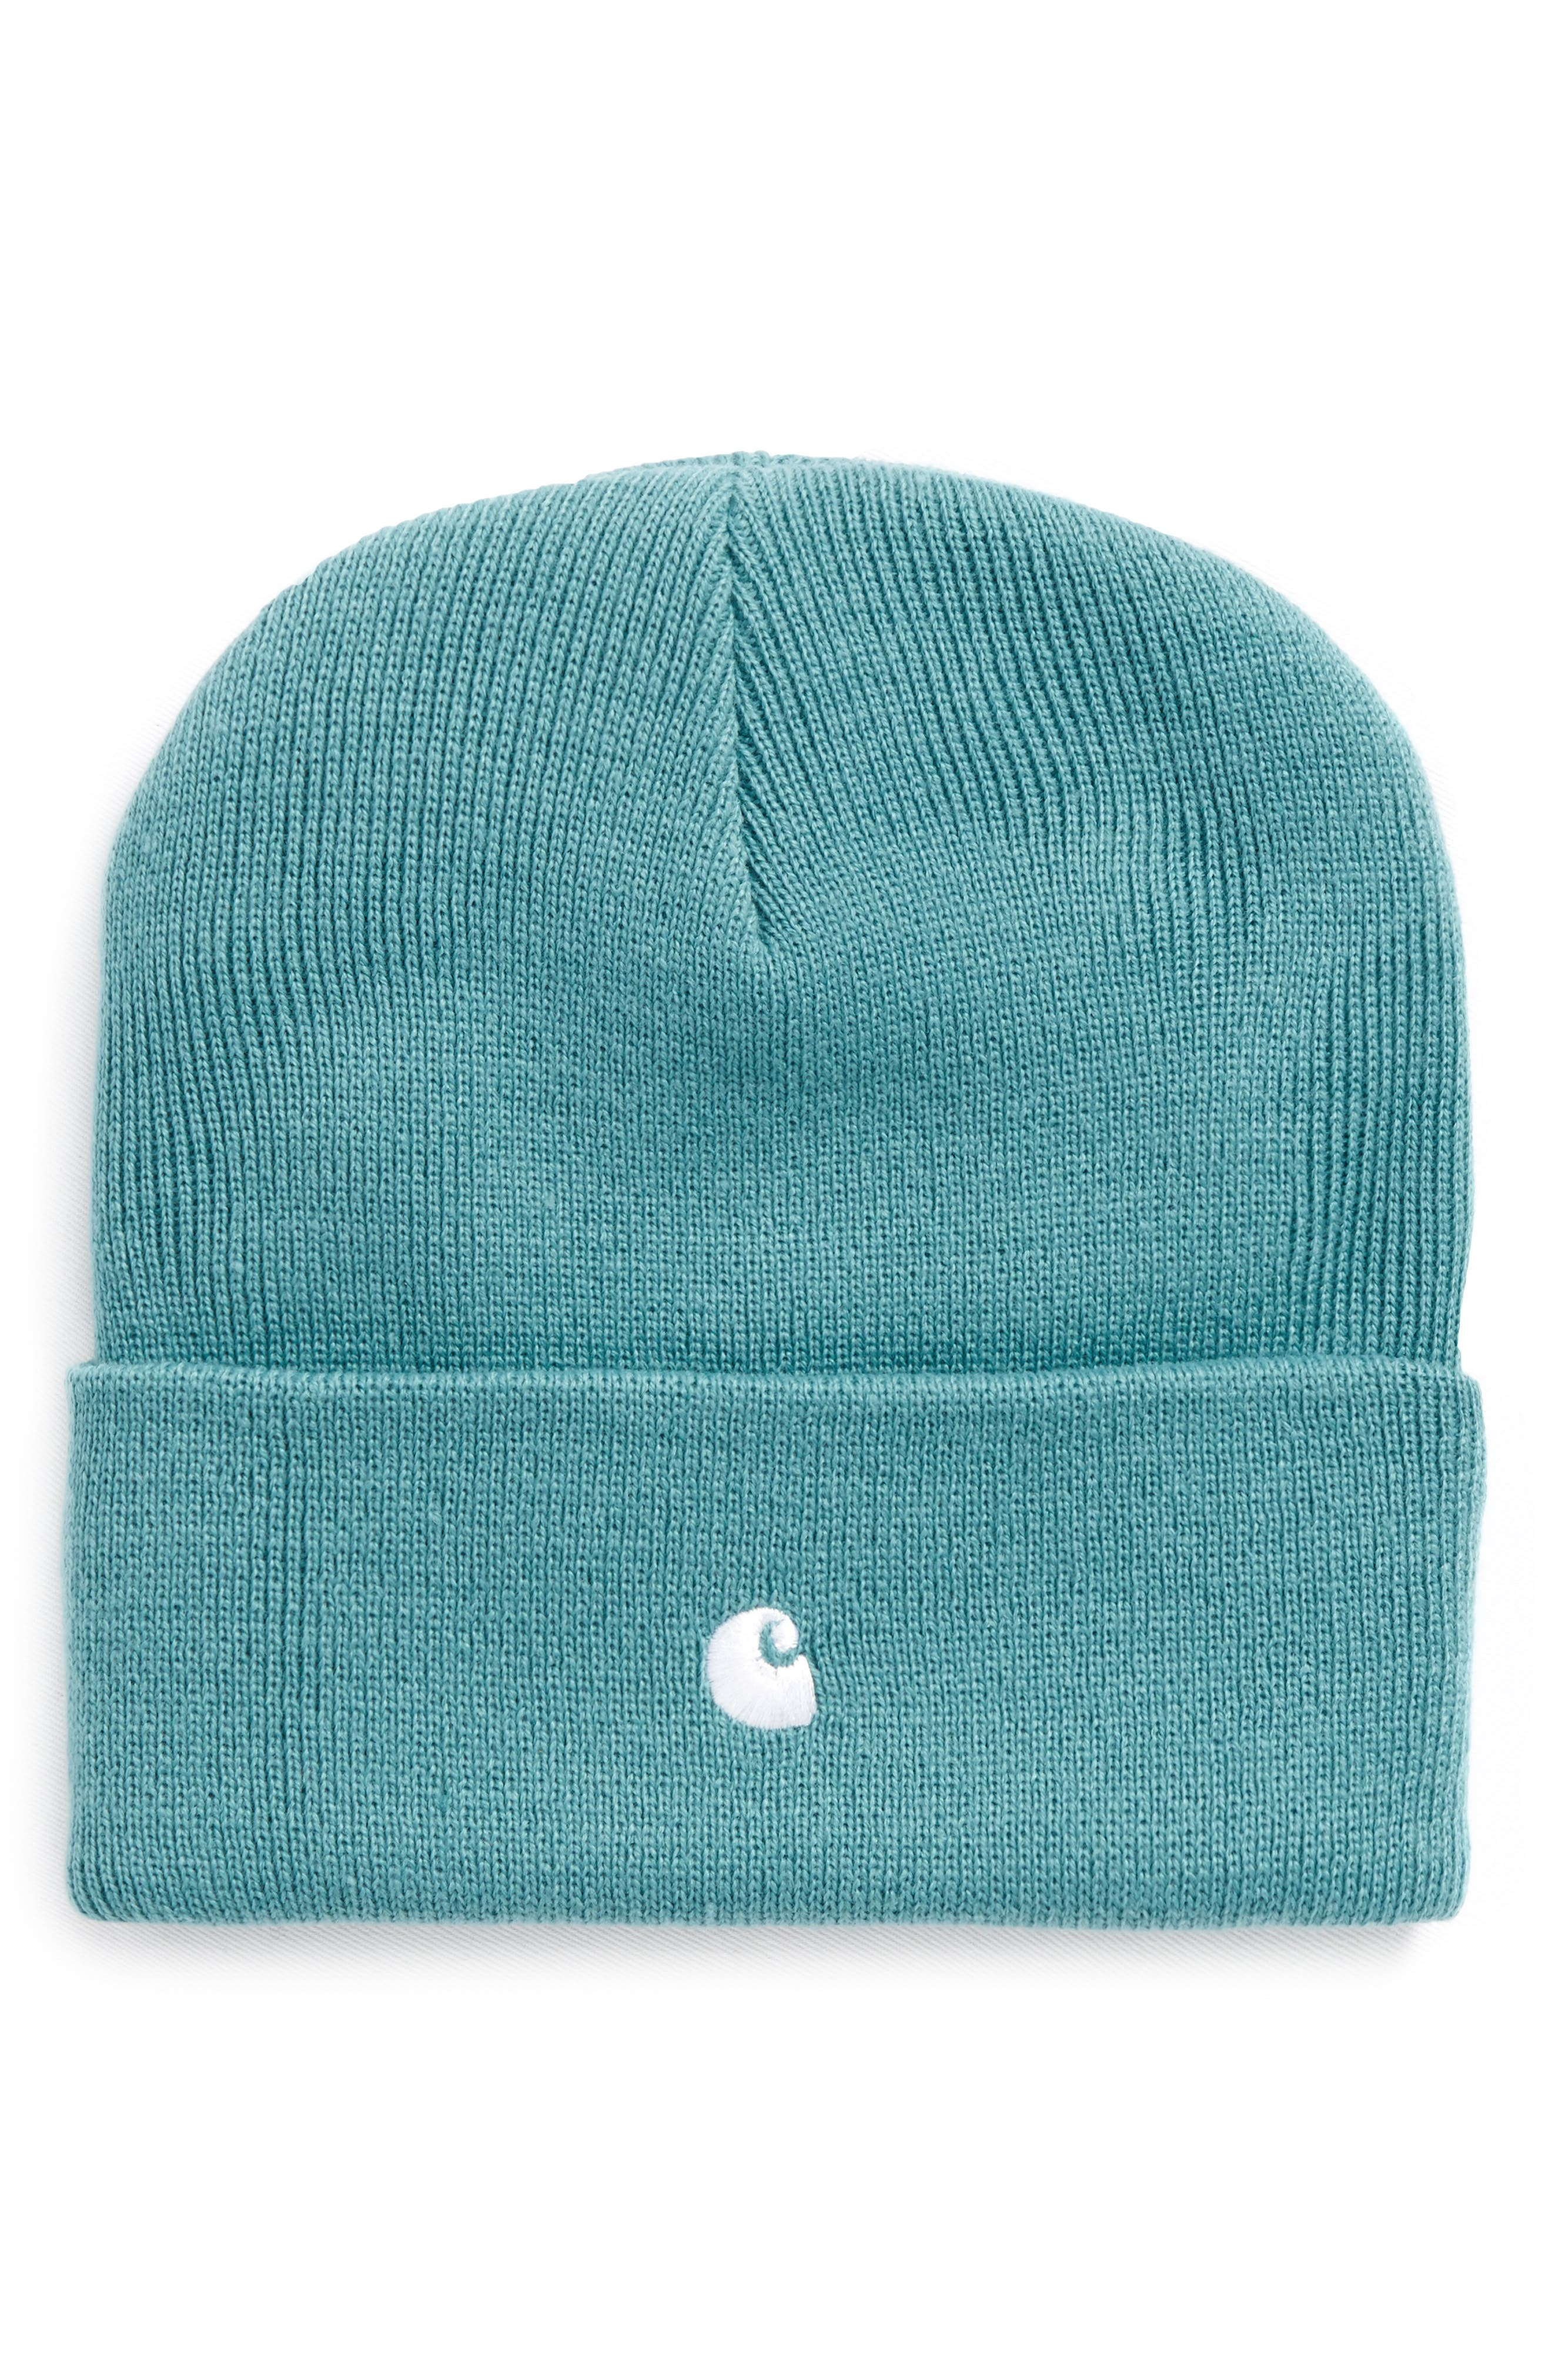 Madison Beanie,                         Main,                         color, 71590-Soft Teal/White